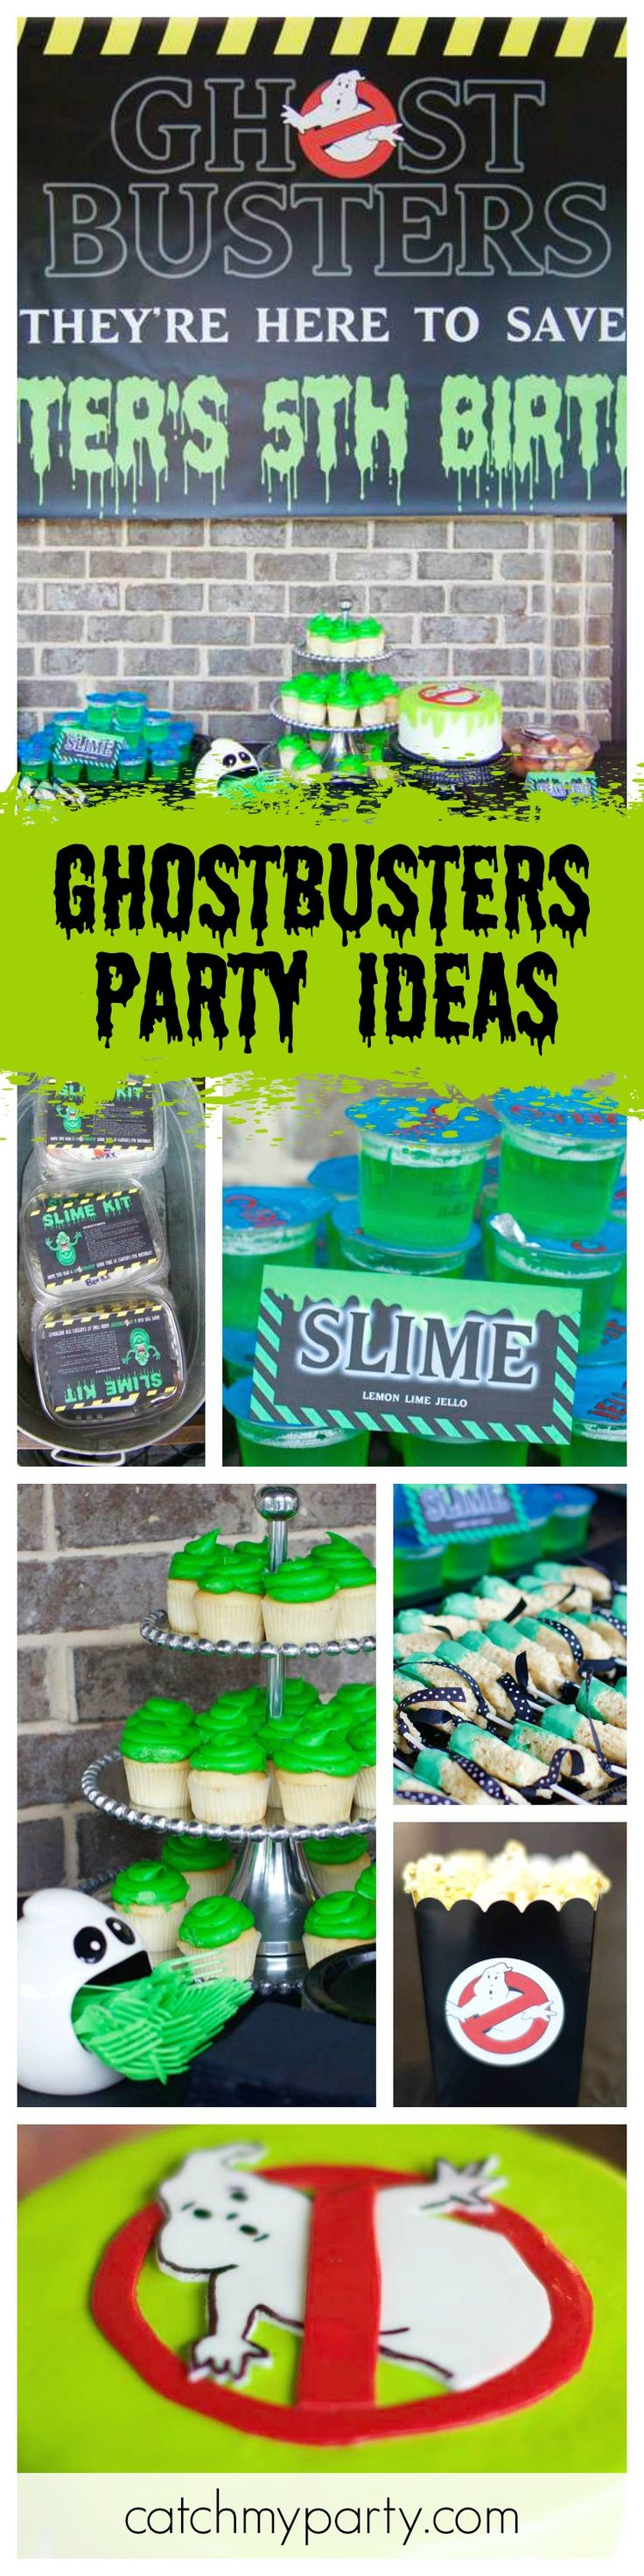 Check out this Ghostbuster Birthday Party! Love how the cutlery is served! Such a great theme for Halloween Party too! See more party ideas and share yours at CatchMyParty.com